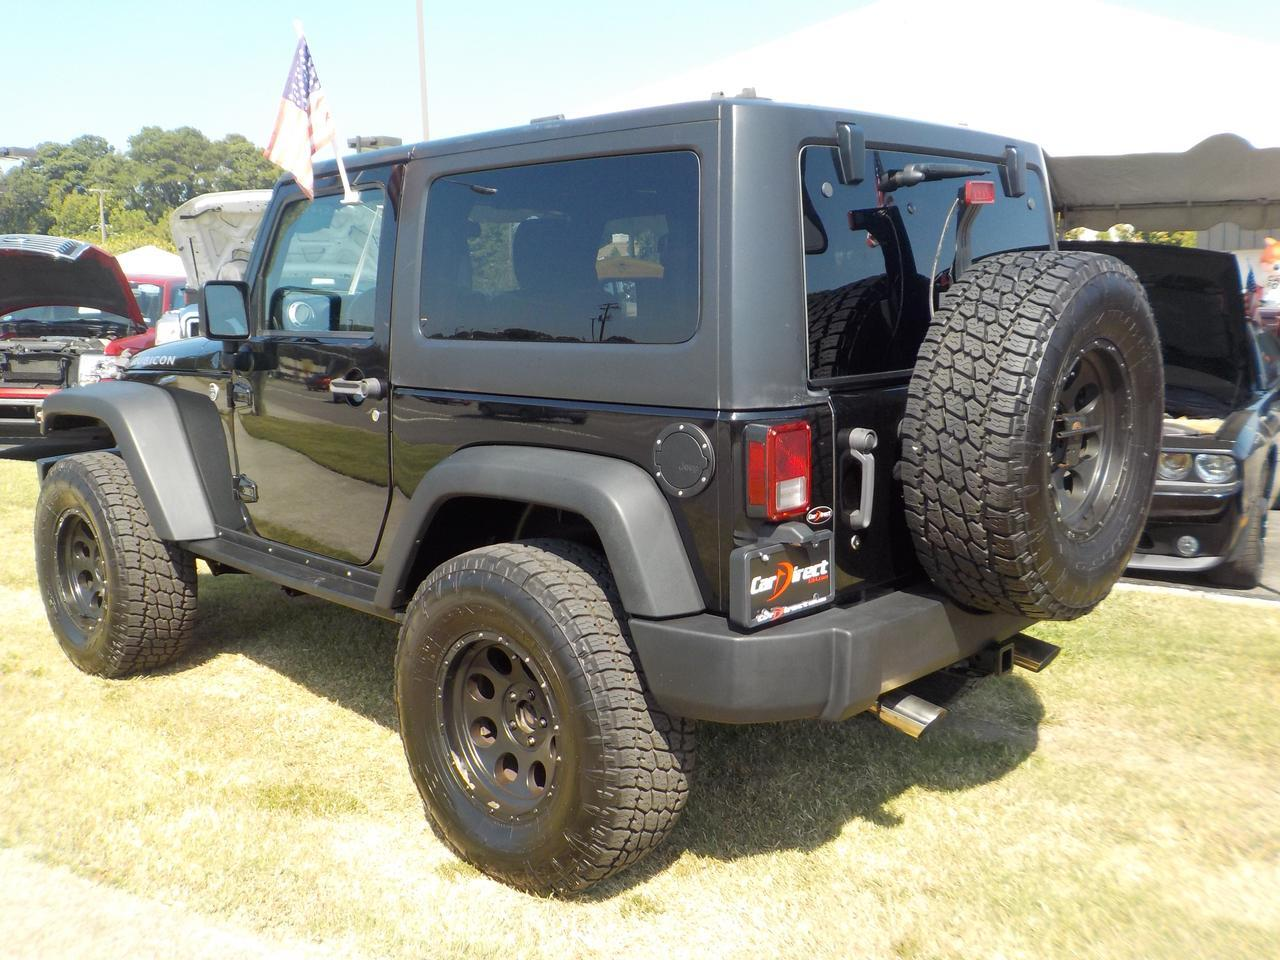 2011 JEEP WRANGLER RUBICON 4X4, KEYLESS ENTRY, TOW HITCH, USB, CRUISE CONTROL, HEATED SEATS! Virginia Beach VA